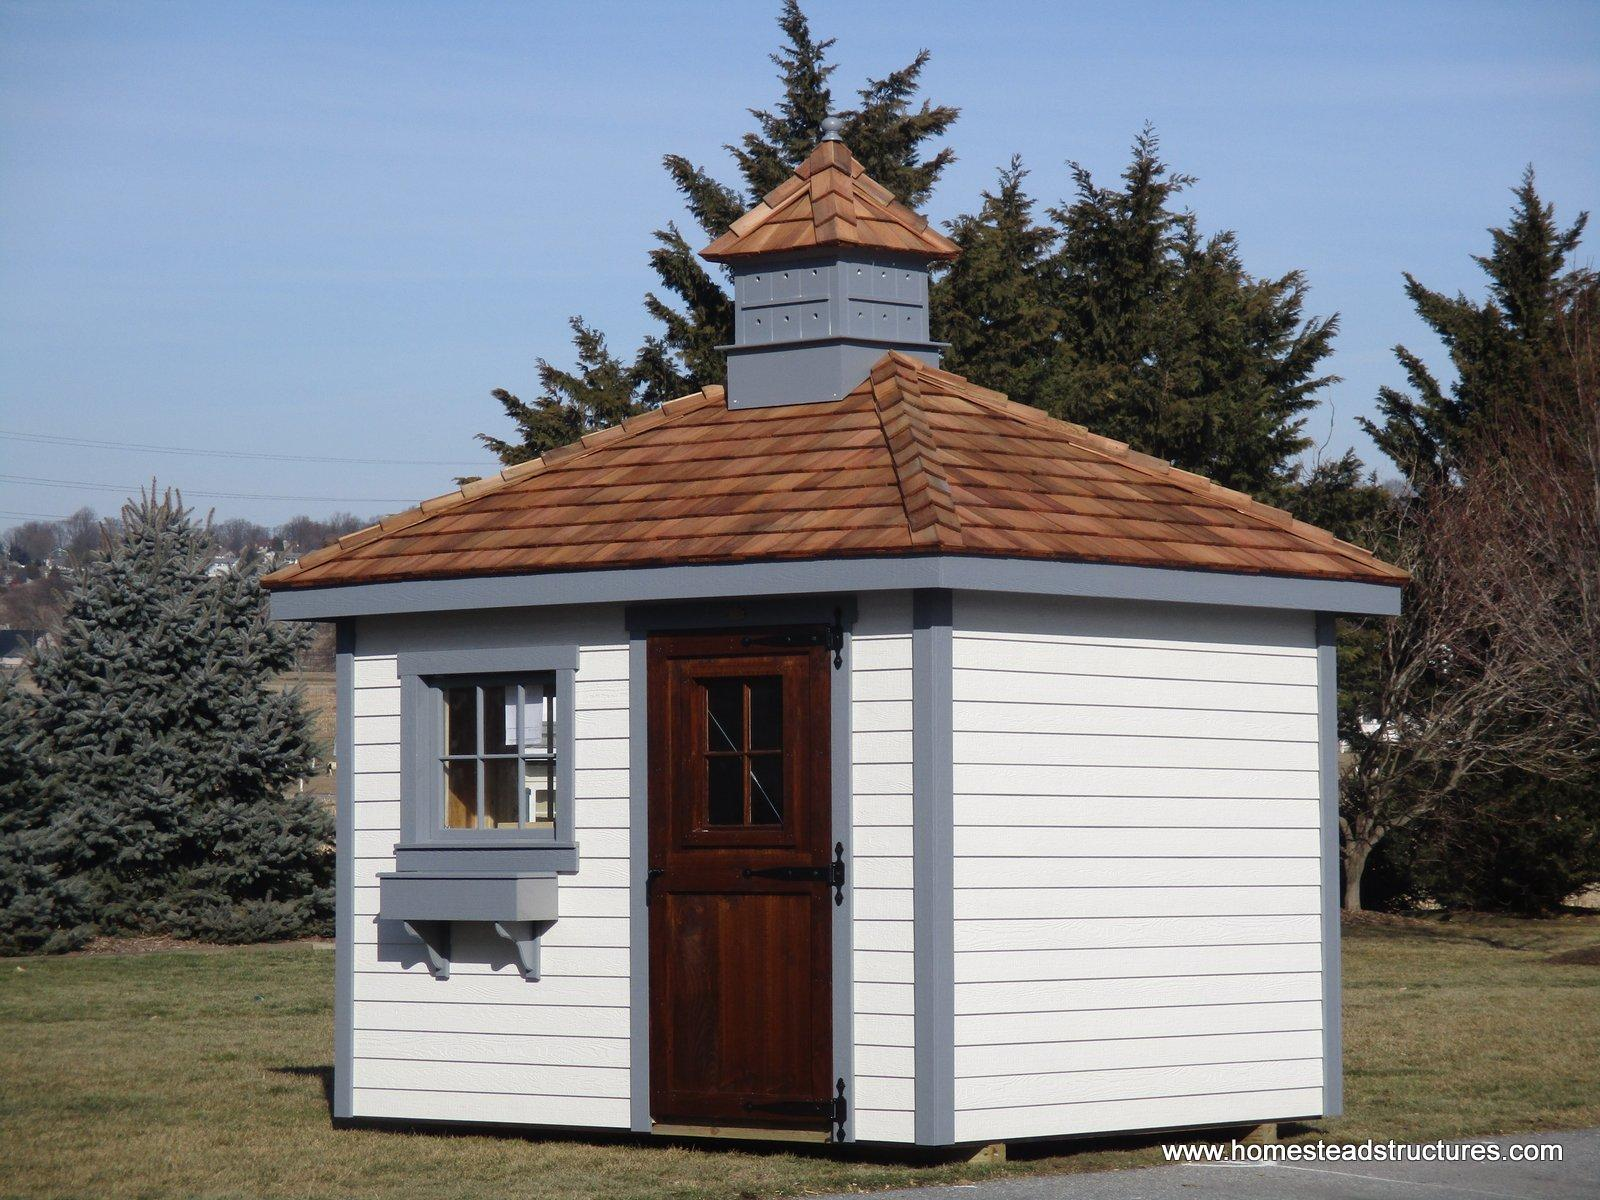 Hip Roof Sheds Homestead Structures